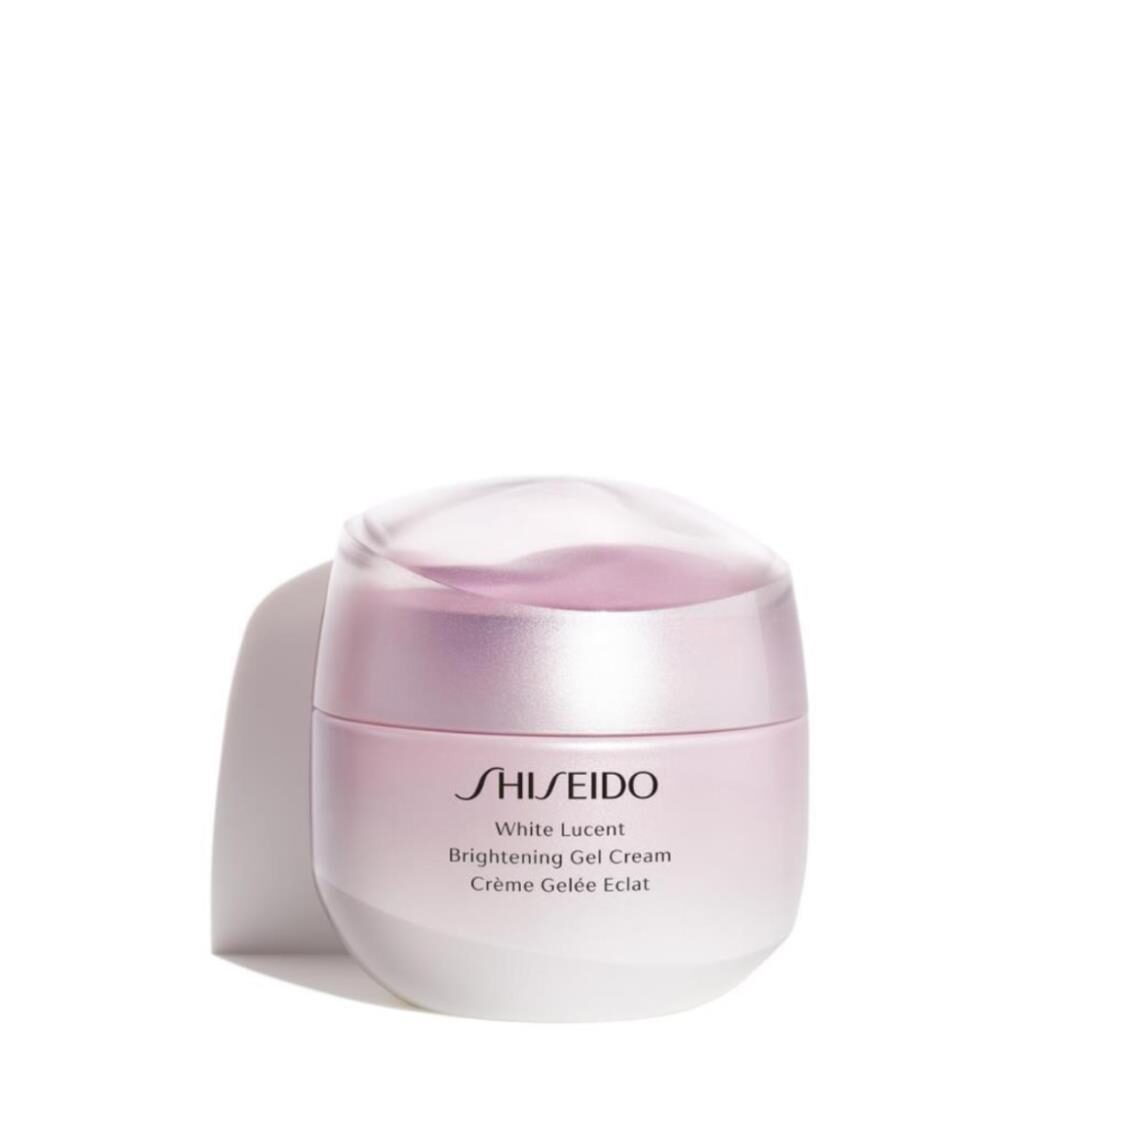 Shiseido White Lucent Brightening Gel Cream